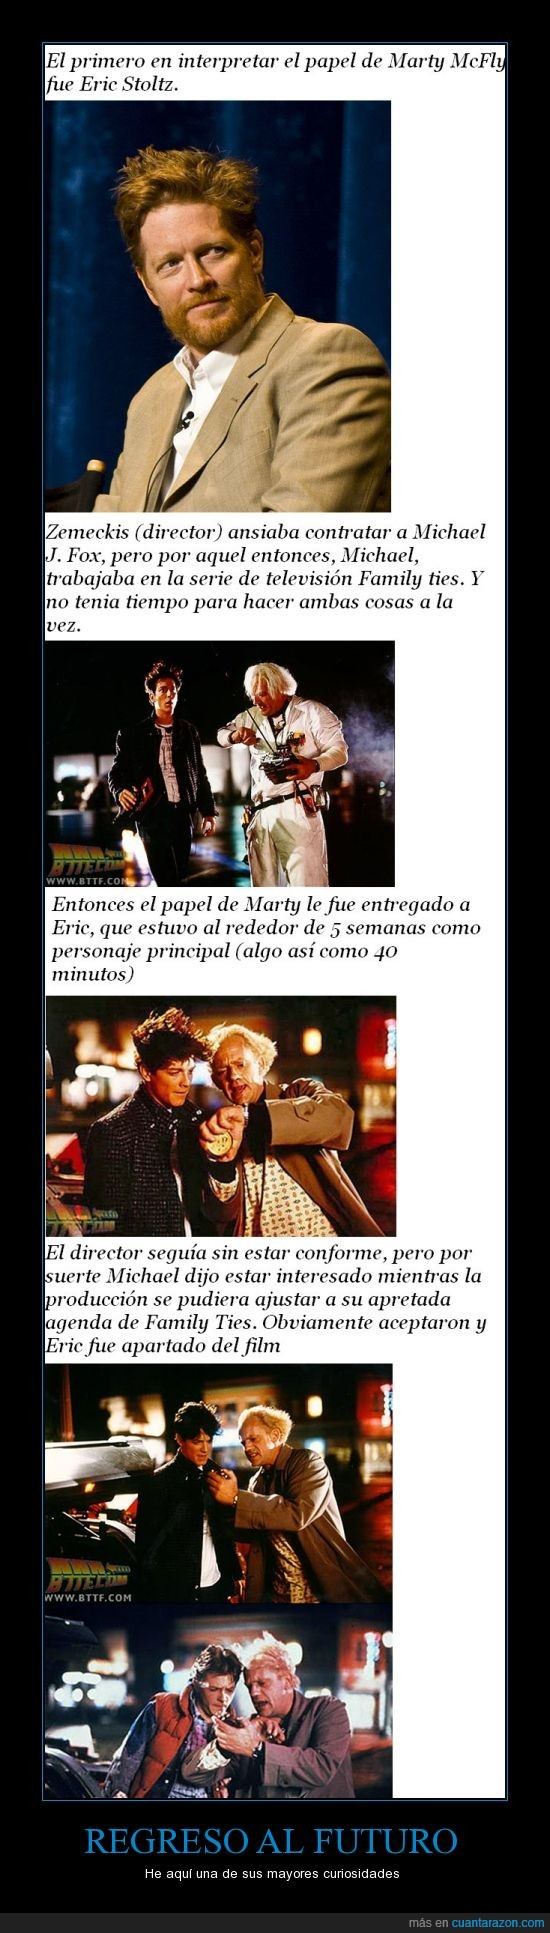 actor,back to the future,eric stoltz,marty mcfly,michael j fox,personaje,primero,reemplazo,regreso al futuro